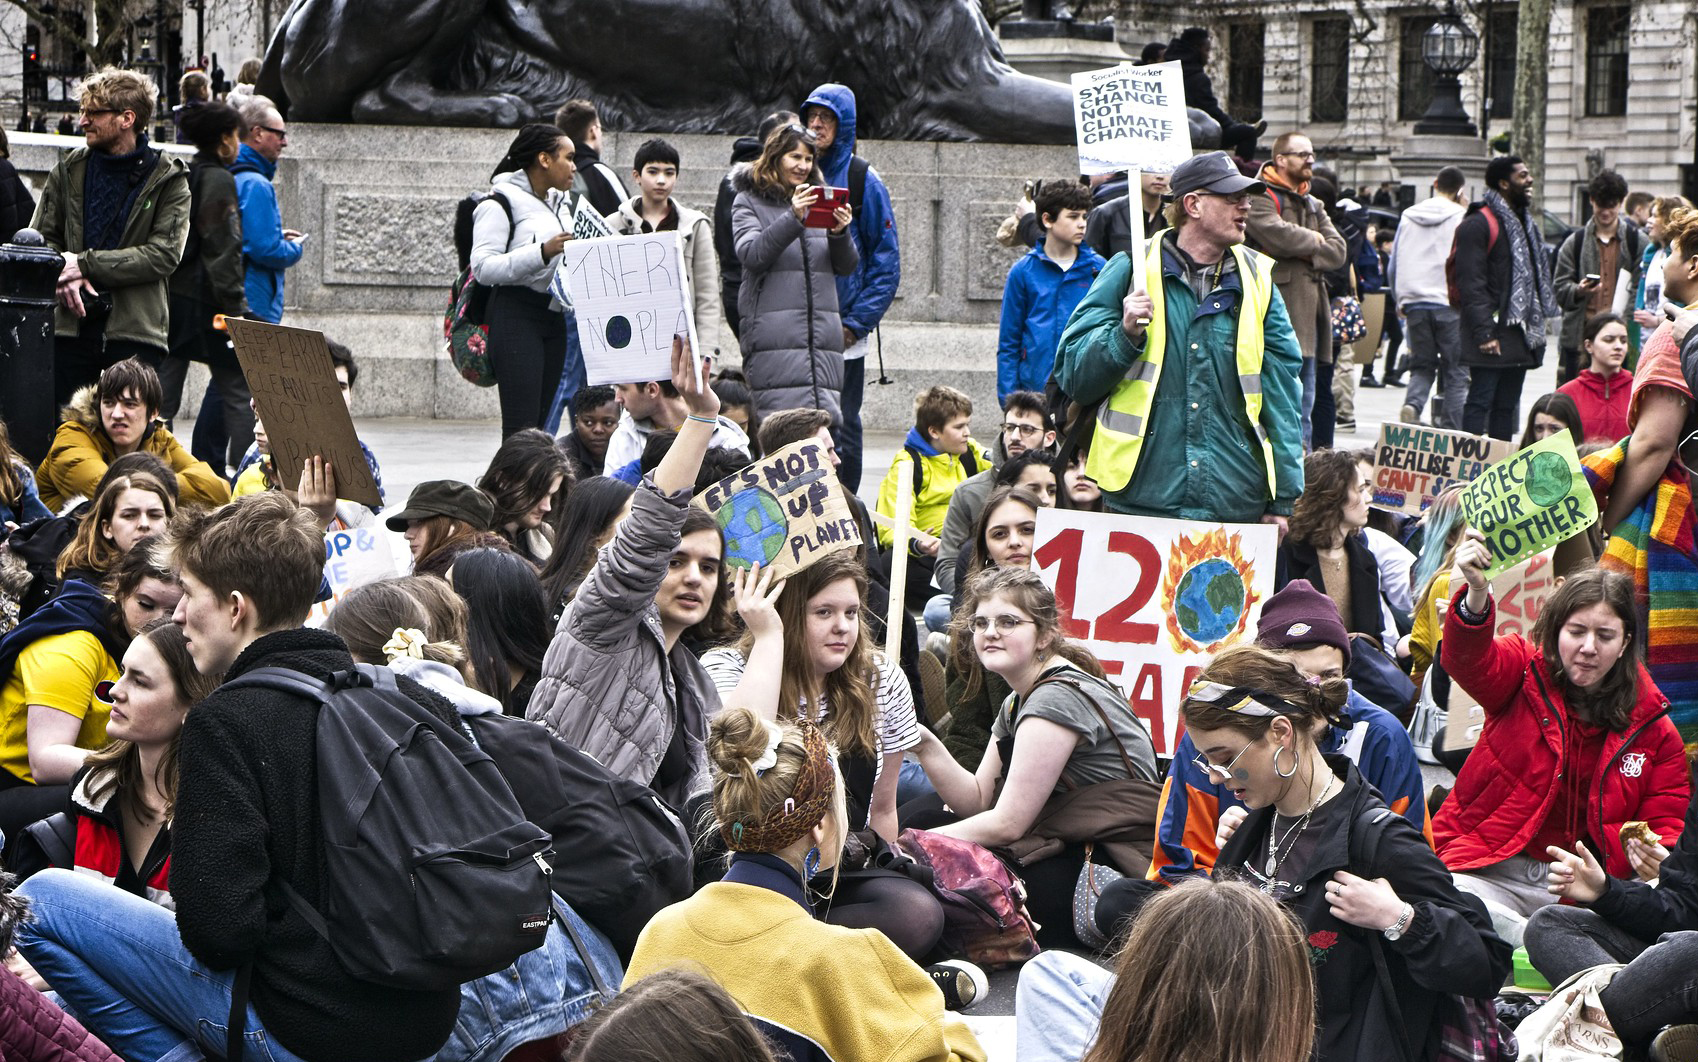 The Youth Climate Strike in London on March 15. Photo by Garry Knight, used via CC0 1.0